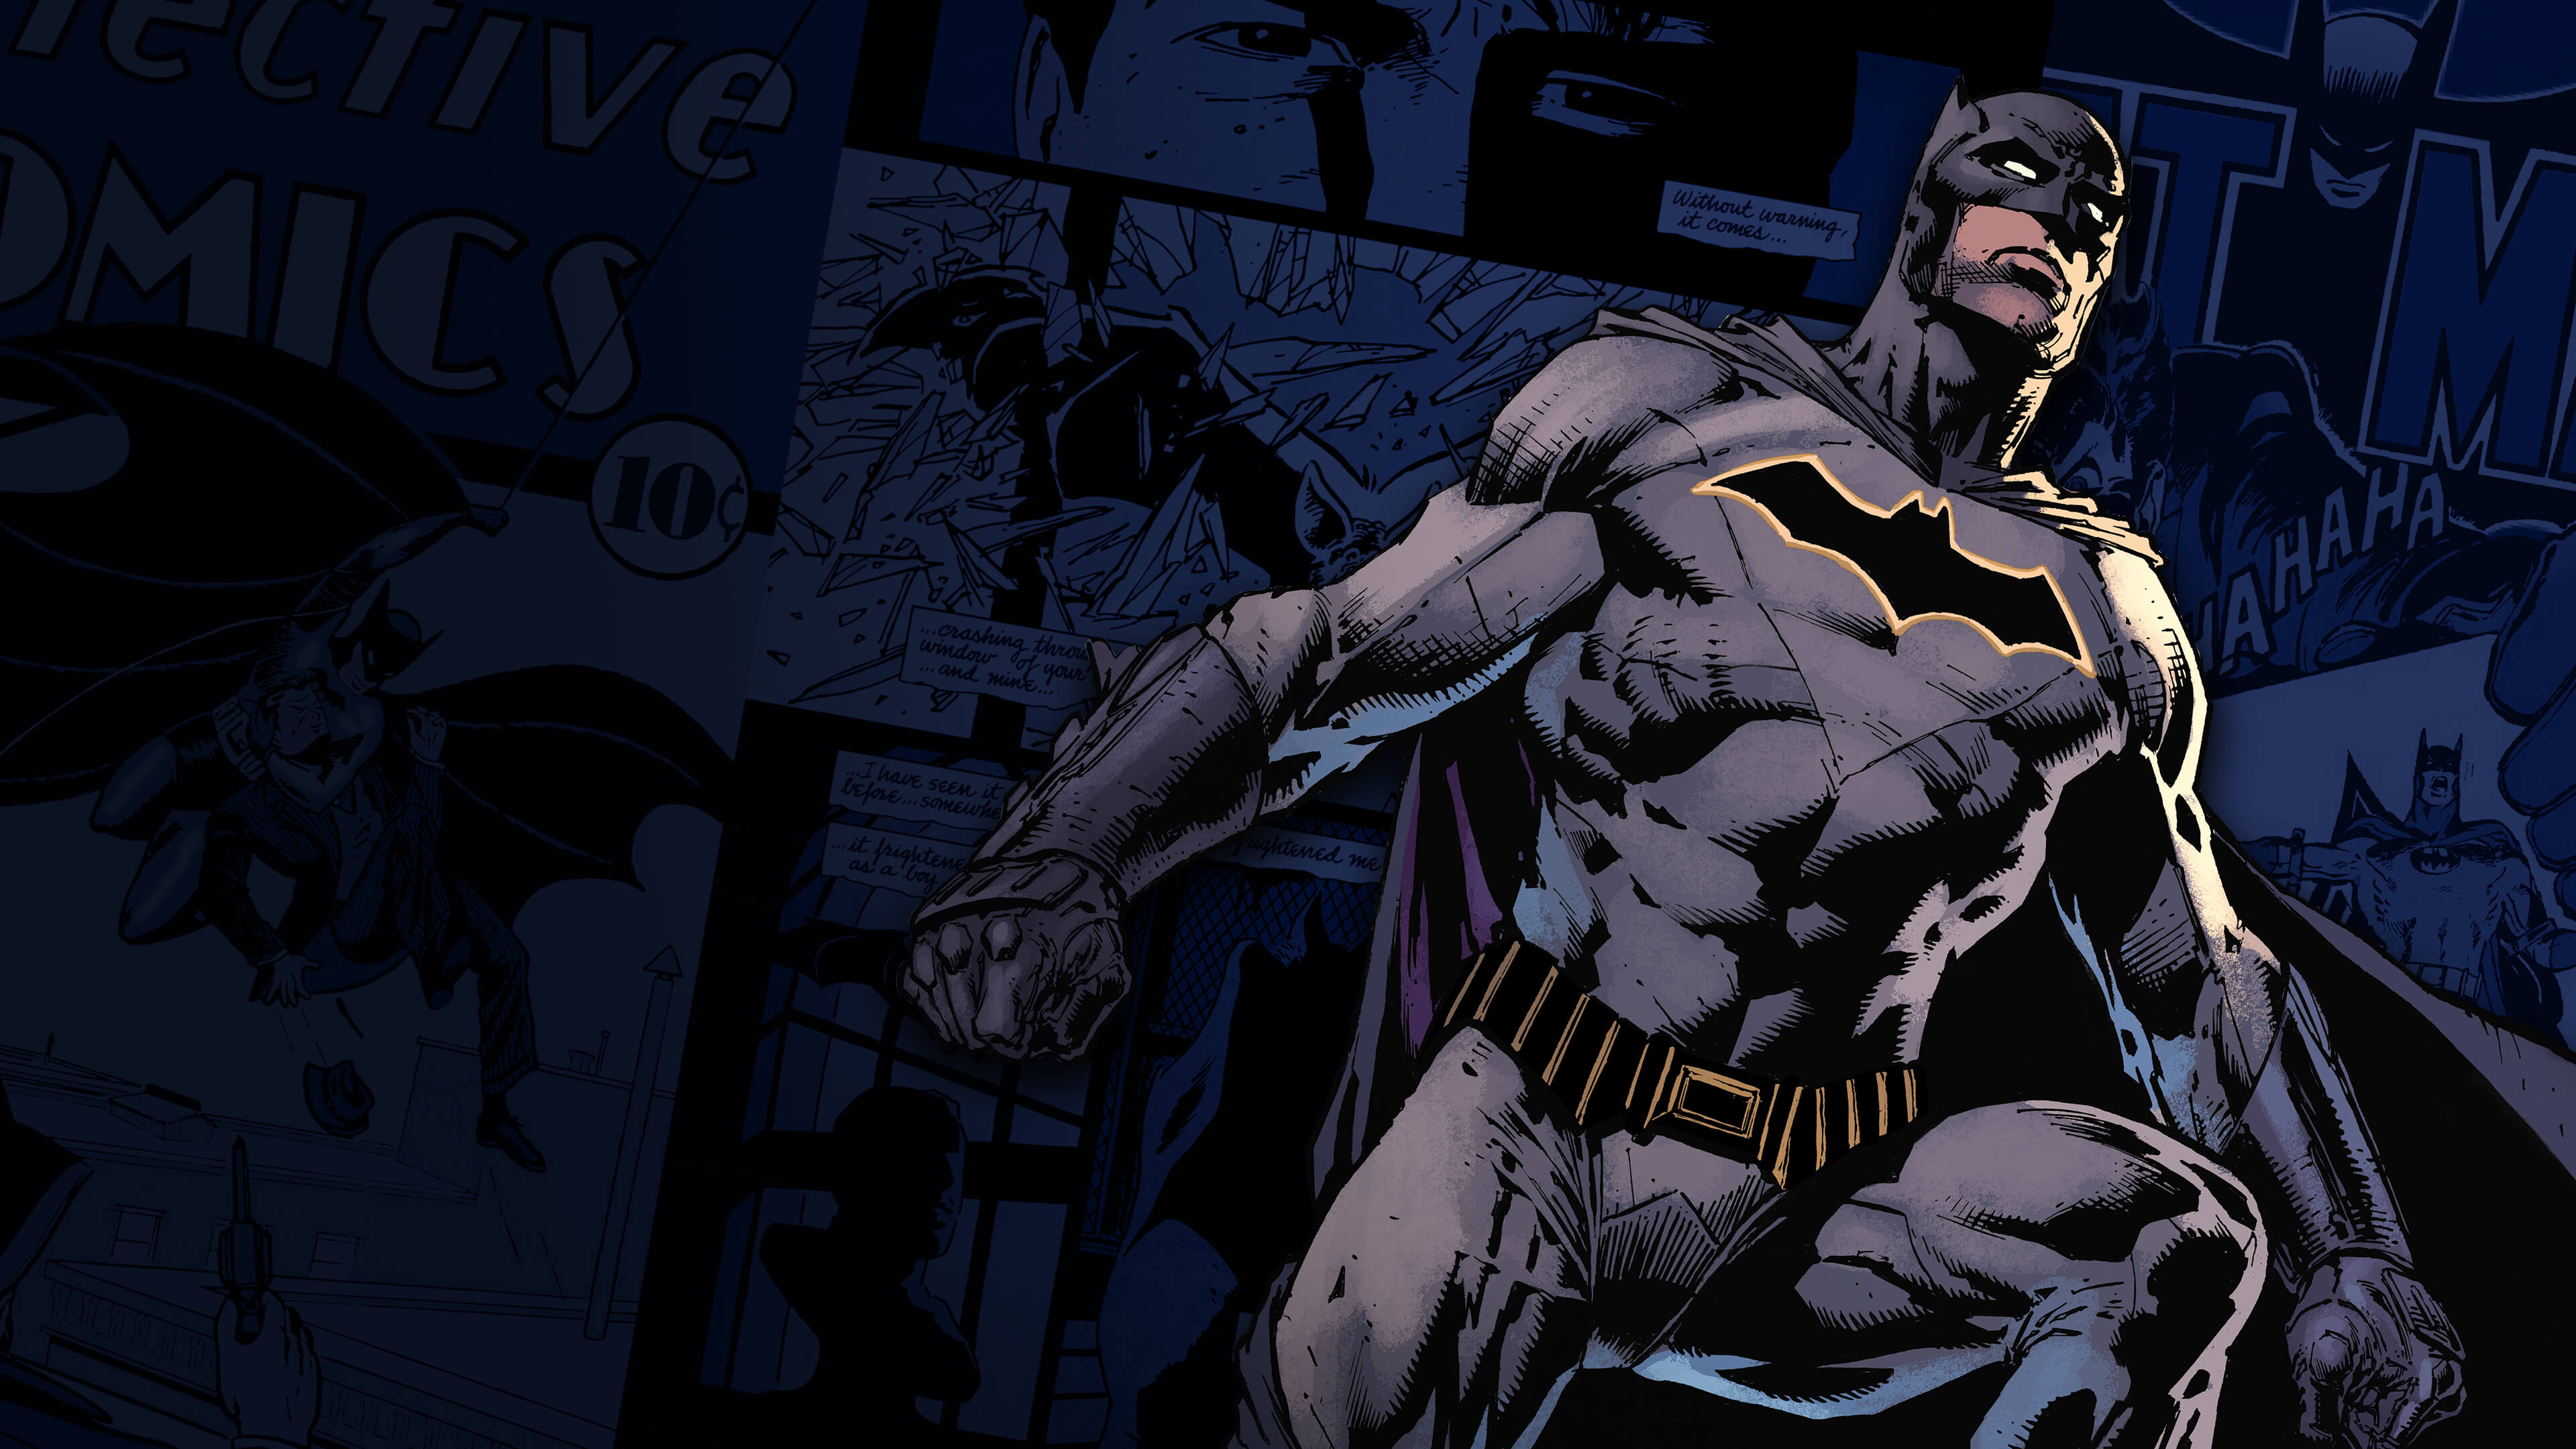 batman-encyclopedia-hero-v1r.jpg